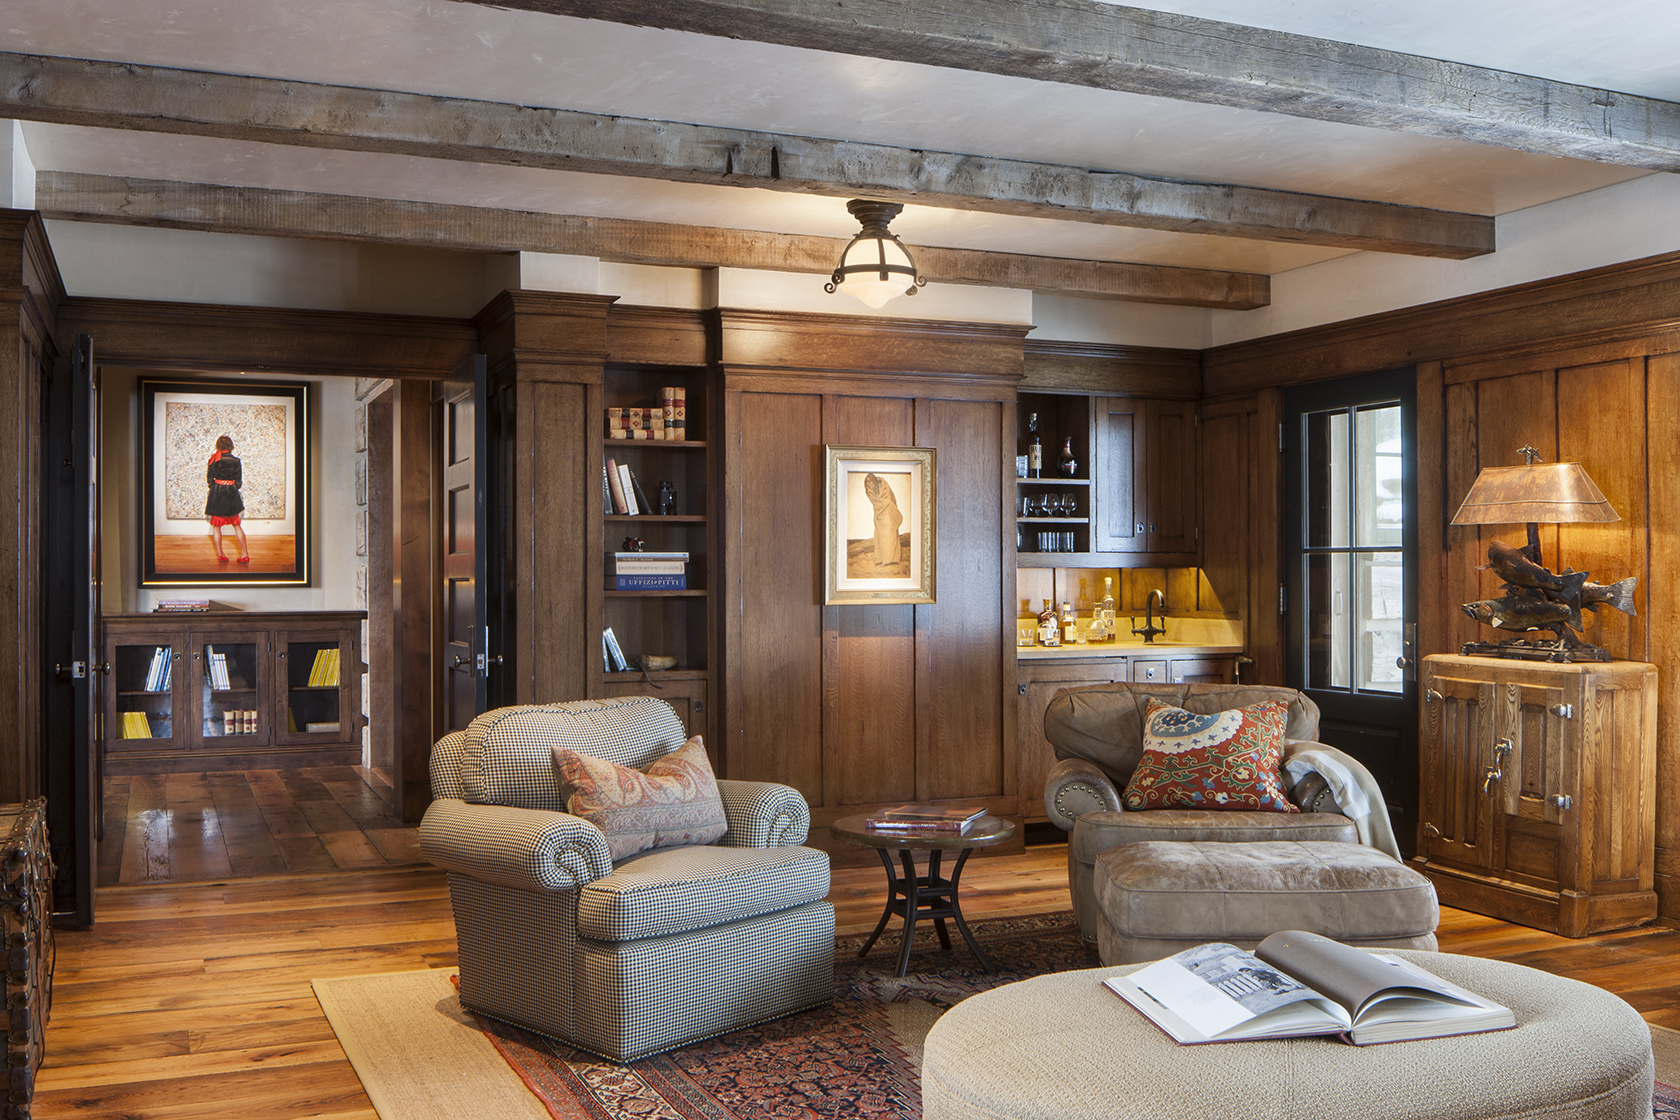 This is a view of a warm and cozy lounge room with wood walls and reclaimed timber ceilings. There is artwork on the walls and comfortable seating with a table and books. Architectural Photography by: Paul Richer / RICHER IMAGES.